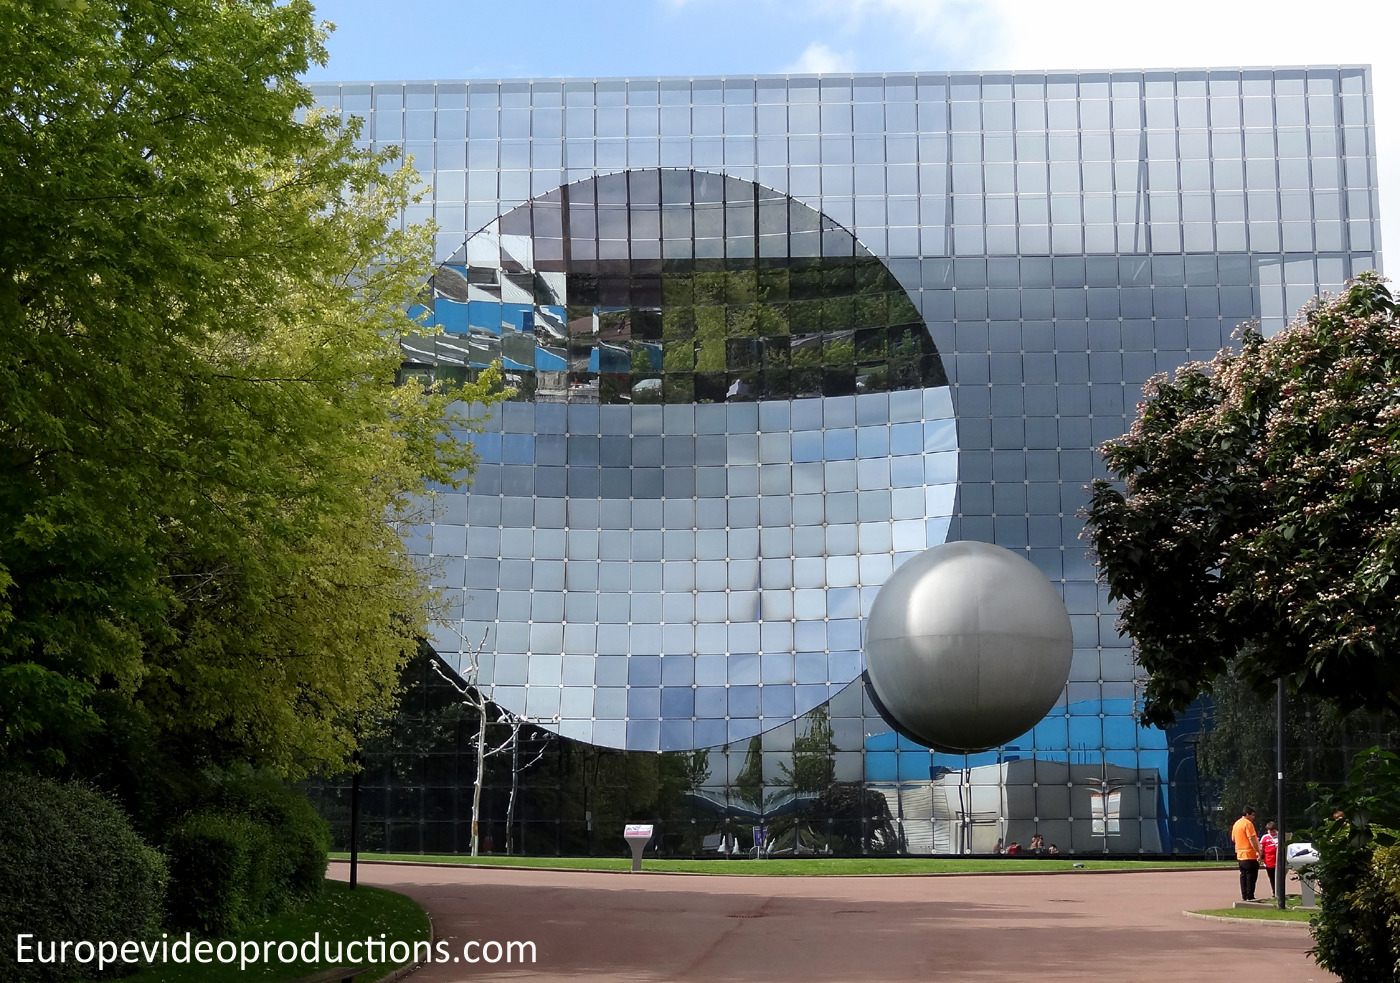 Parc du Futuroscope theme park in France